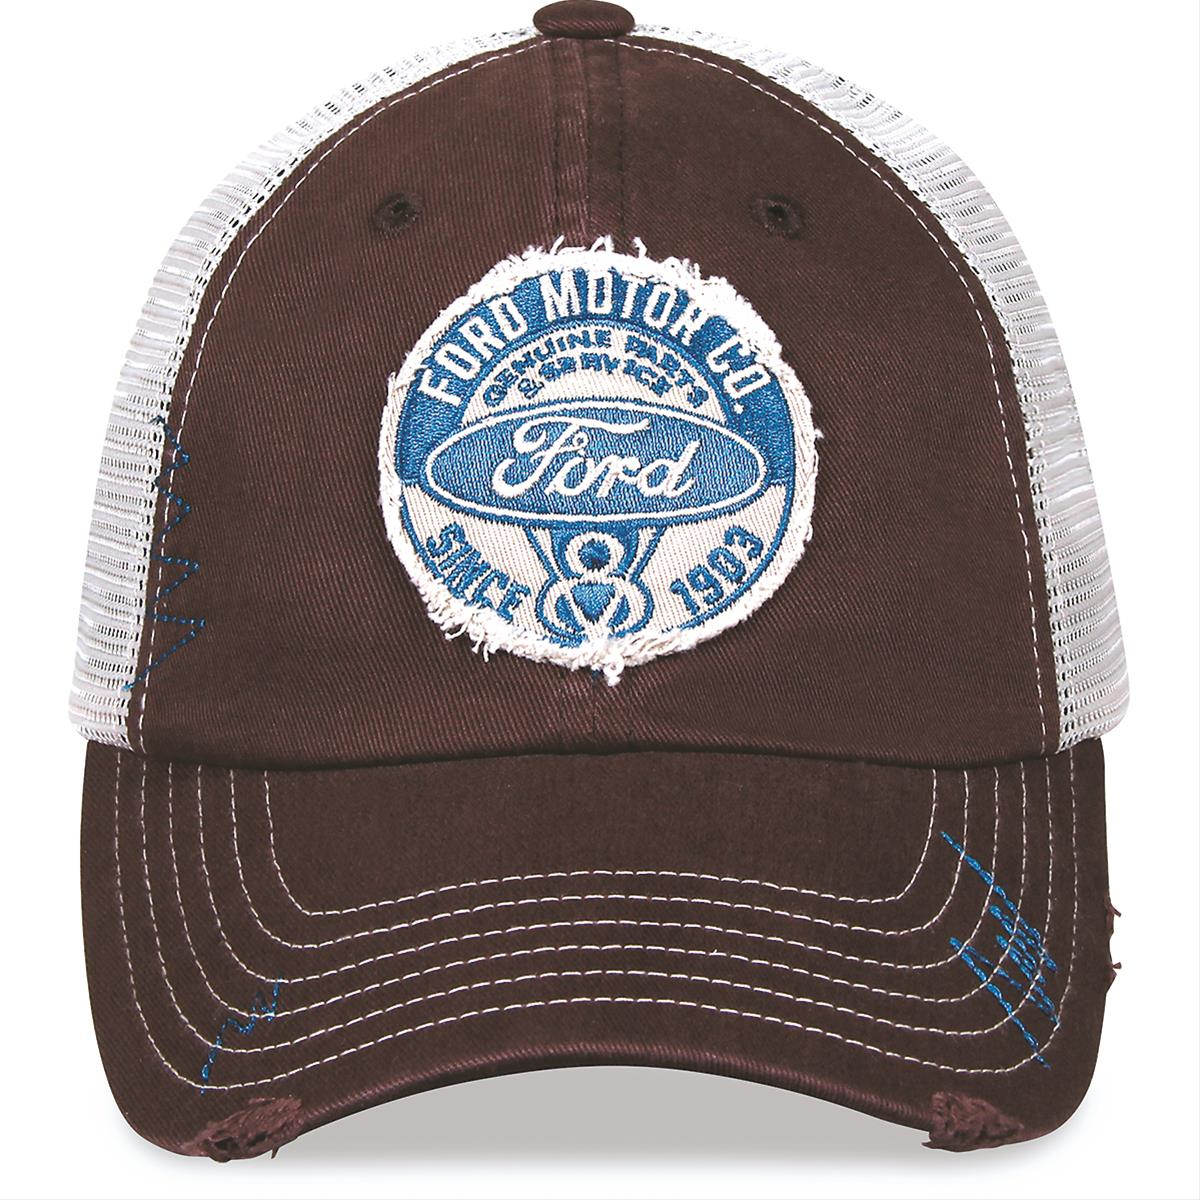 a70d2440a216d Ford Motor Co. Since 1903 Trucker Hat 75489 - Free Shipping on Orders Over   99 at Summit Racing